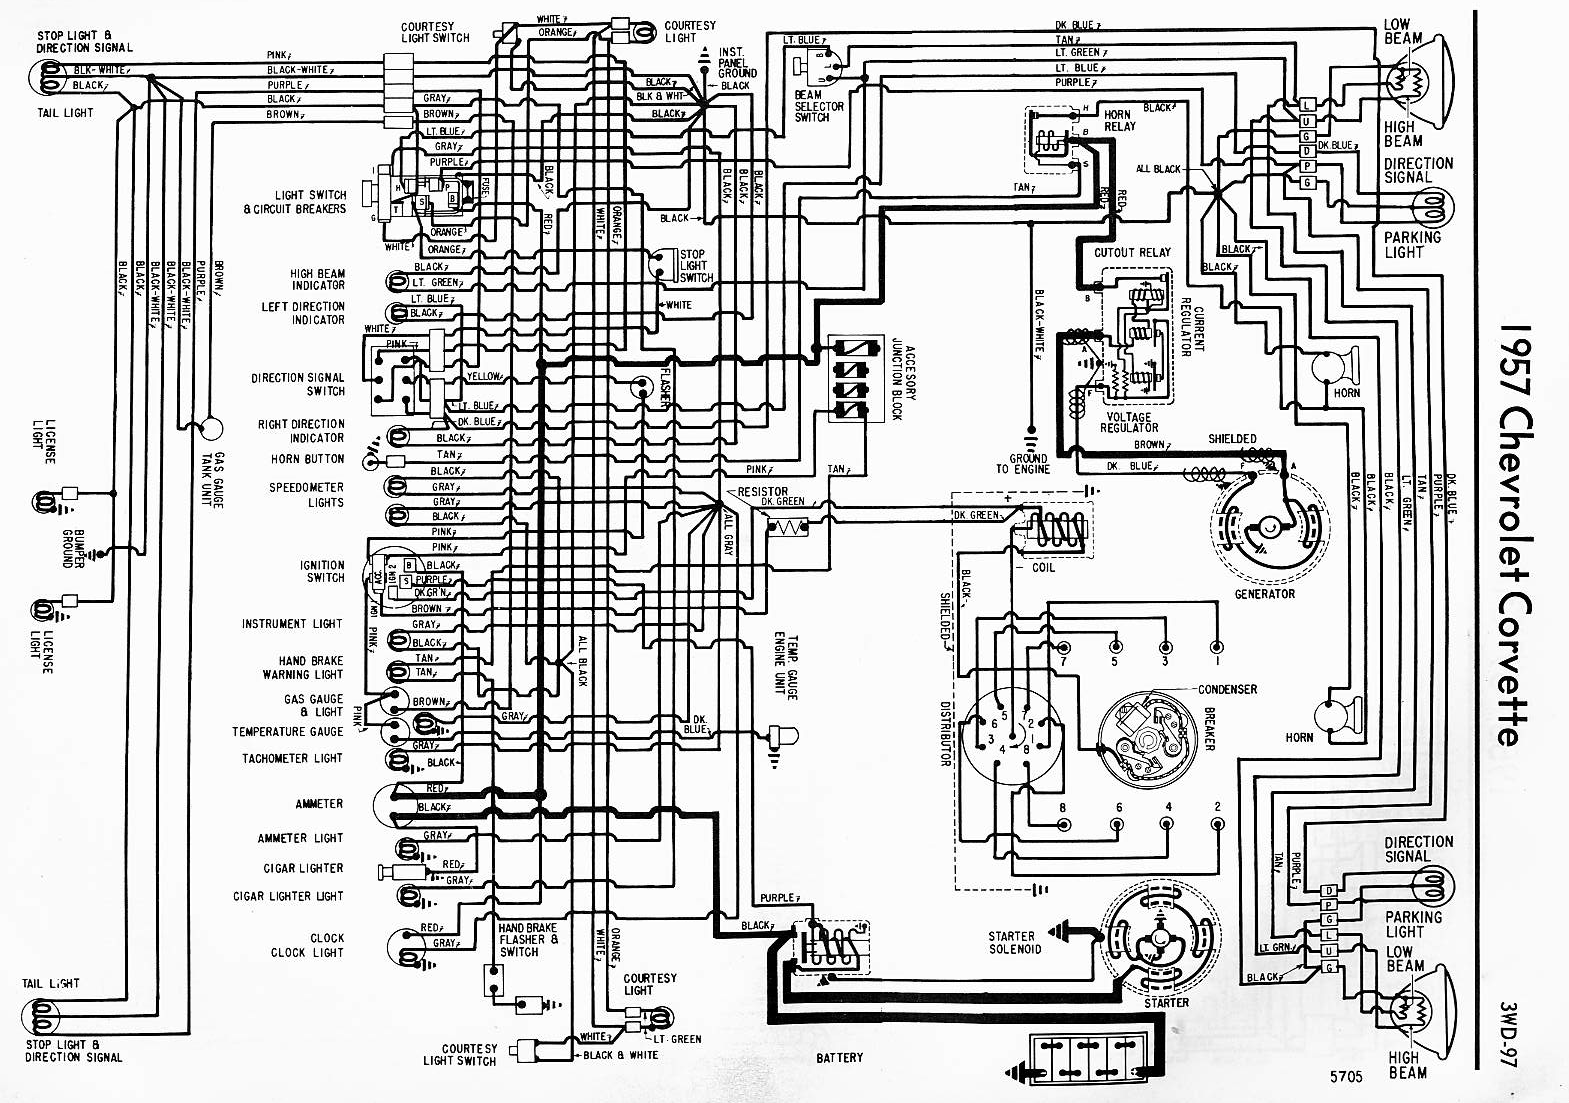 1974 Corvette Under Hood Wiring Harness Diagram Diagrams Big Block Chevy 77 Free Download Library Rh 59 Codingcommunity De 74 79